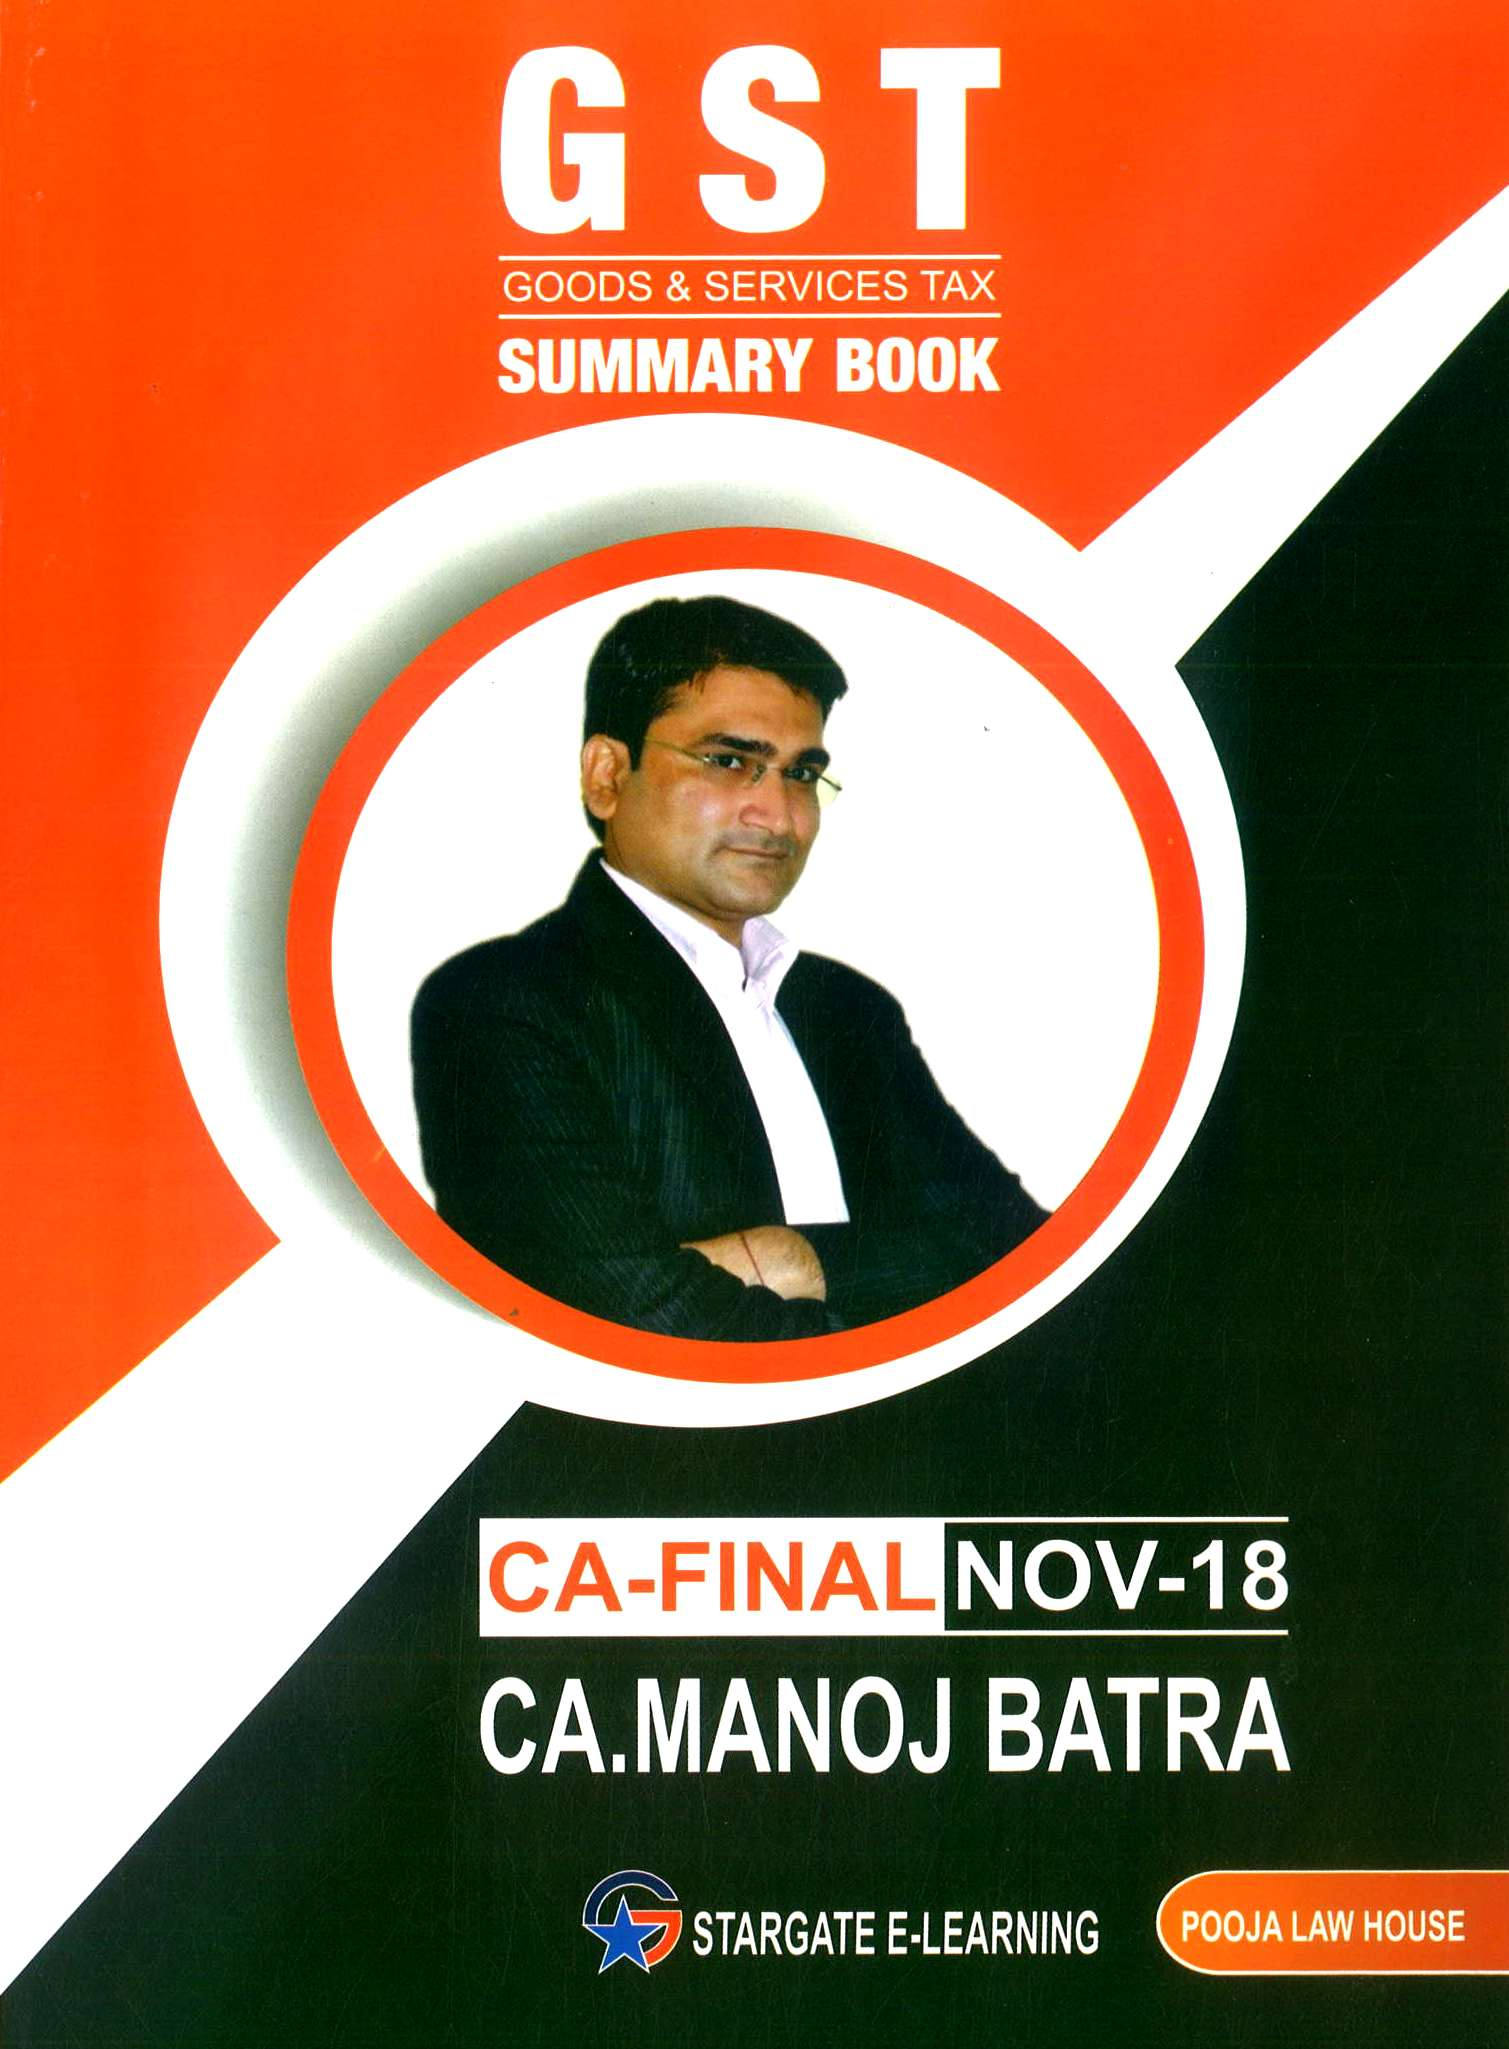 Pooja Law House CA Final (Goods And Services Tax ) GST Summary Book By Manoj Batra Applicable for Nov 2018 Exam